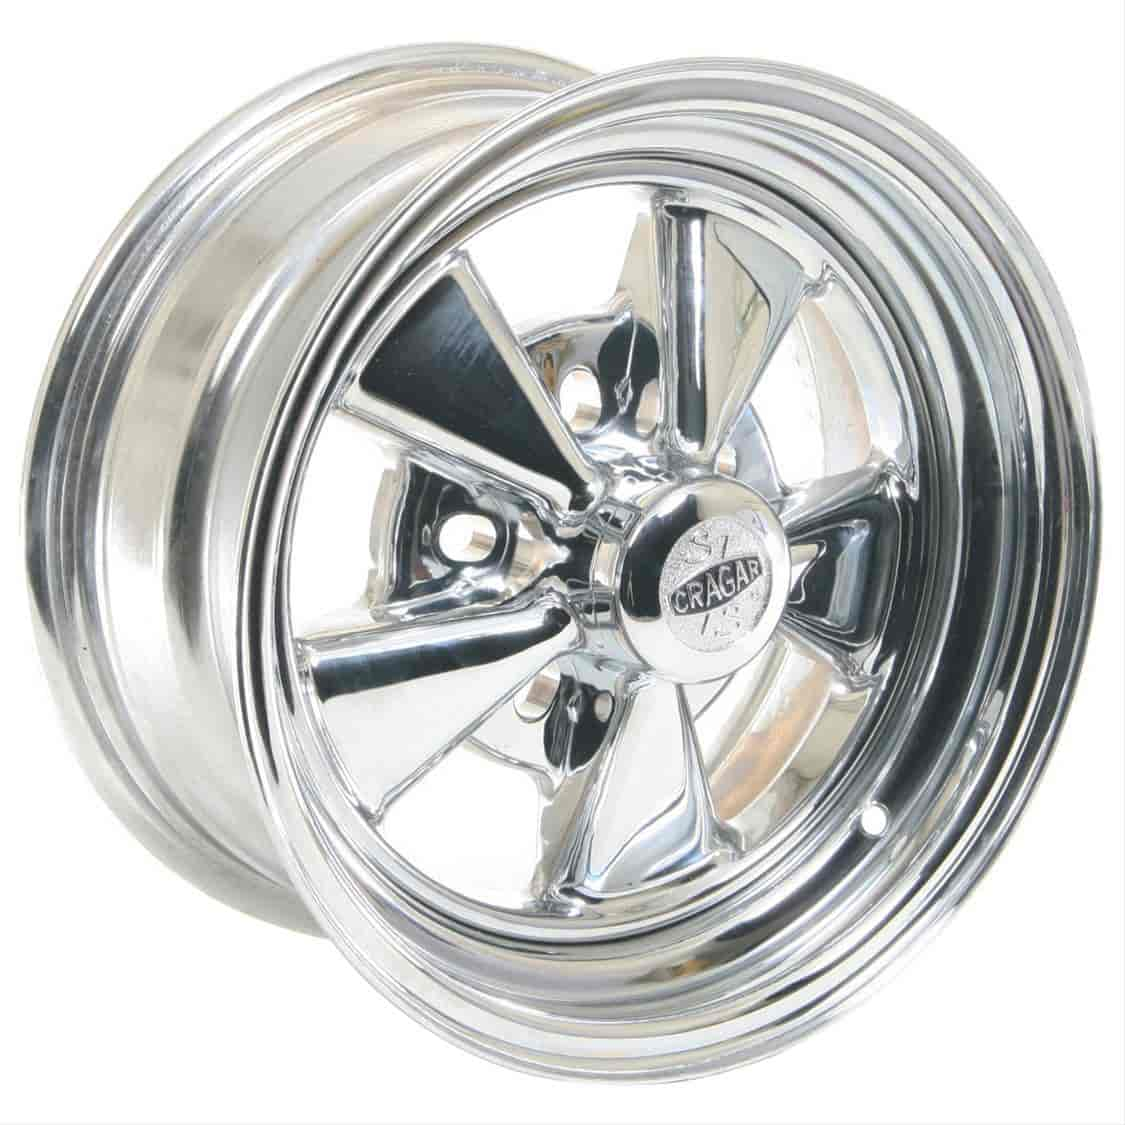 Cragar 61716 - Cragar 08/61 Series S/S Super Sport Wheels